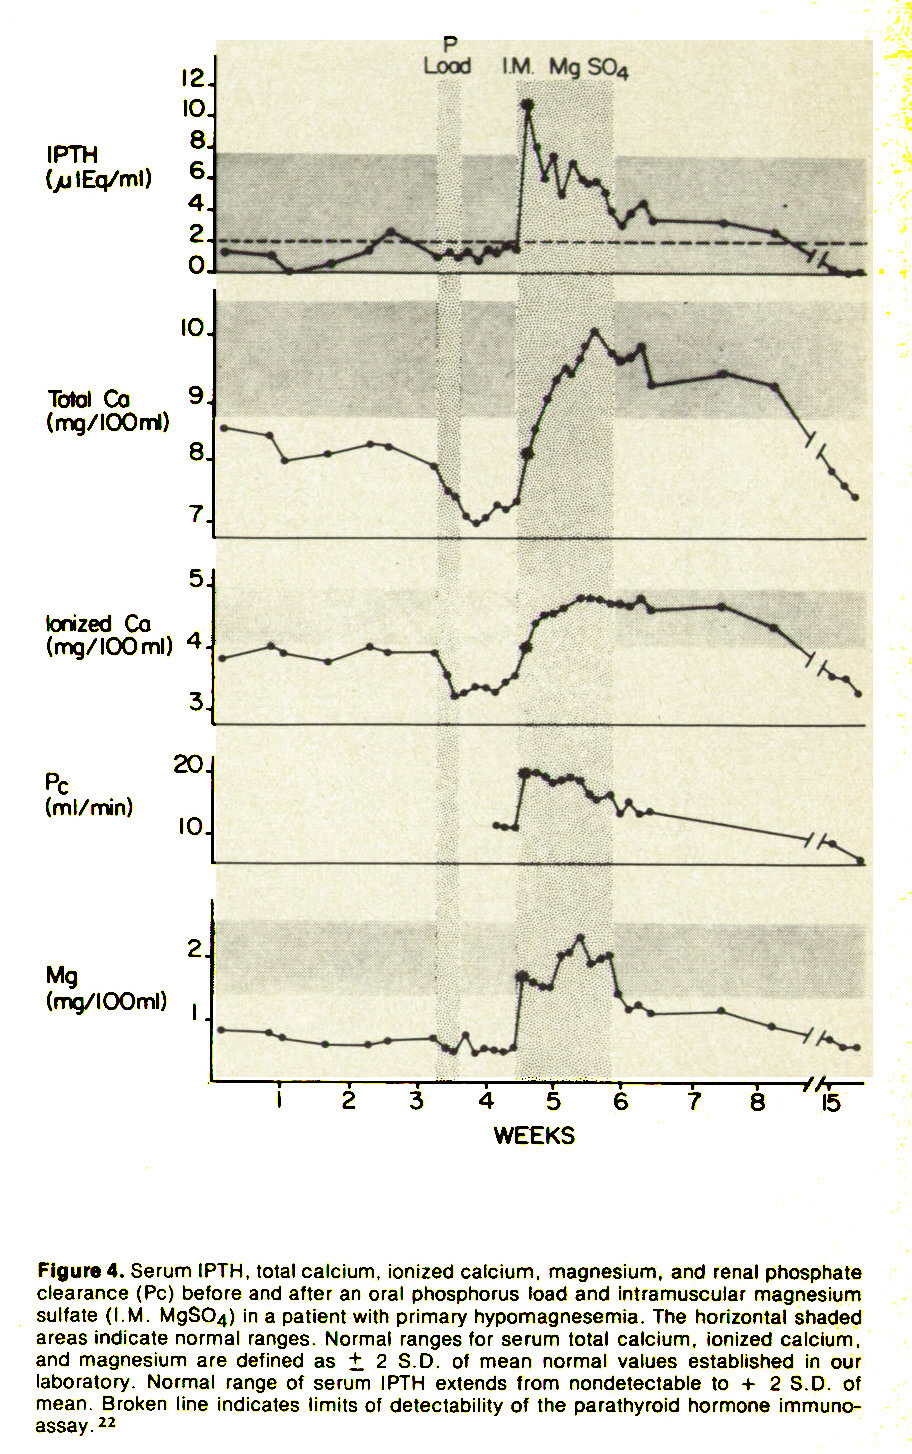 Figure 4. Serum IPTH, total calcium, ionized calcium, magnesium, and renal phosphate clearance (Pc) before and after an oral phosphorus load and intramuscular magnesium sulfate (I. M. MgSO/i) in a patient with primary hypomagnesemia. The horizontal shaded areas indicate normal ranges. Normal ranges for serum total calcium, ionized calcium, and magnesium are defined as + 2 S.D. of mean normal values established in our laboratory. Normal range of serum IPTH extends from nondetectable to + 2 S.D. of mean. Broken line indicates limits of detectability of the parathyroid hormone immunoassay. 22